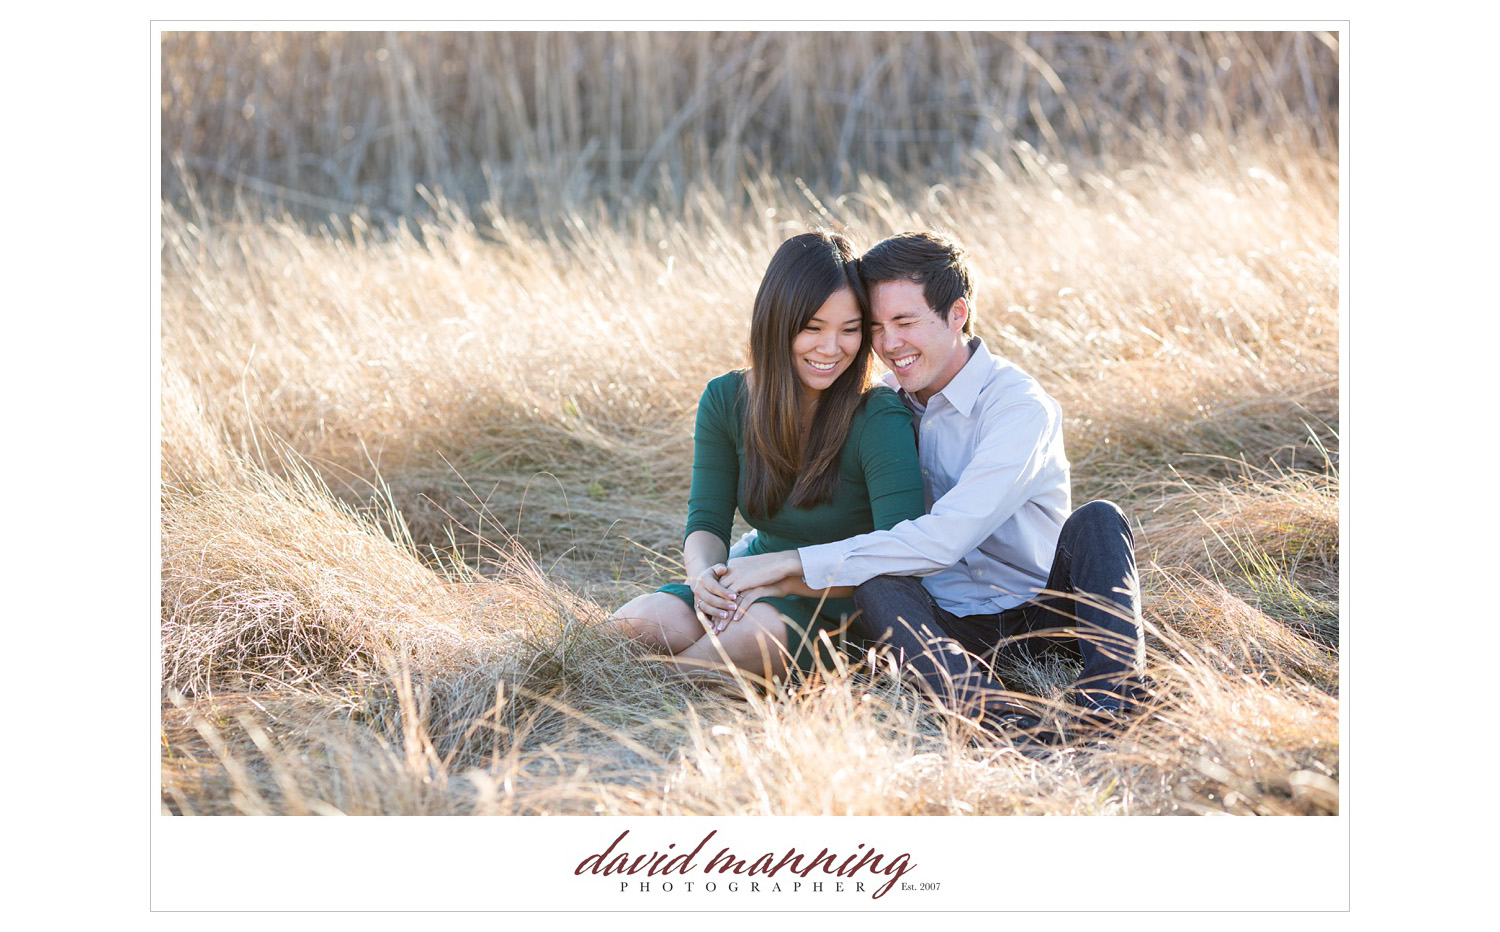 Del-Mar-Ramona-Julian-Engagement-Photos-David-Manning-Photographers-0006.jpg